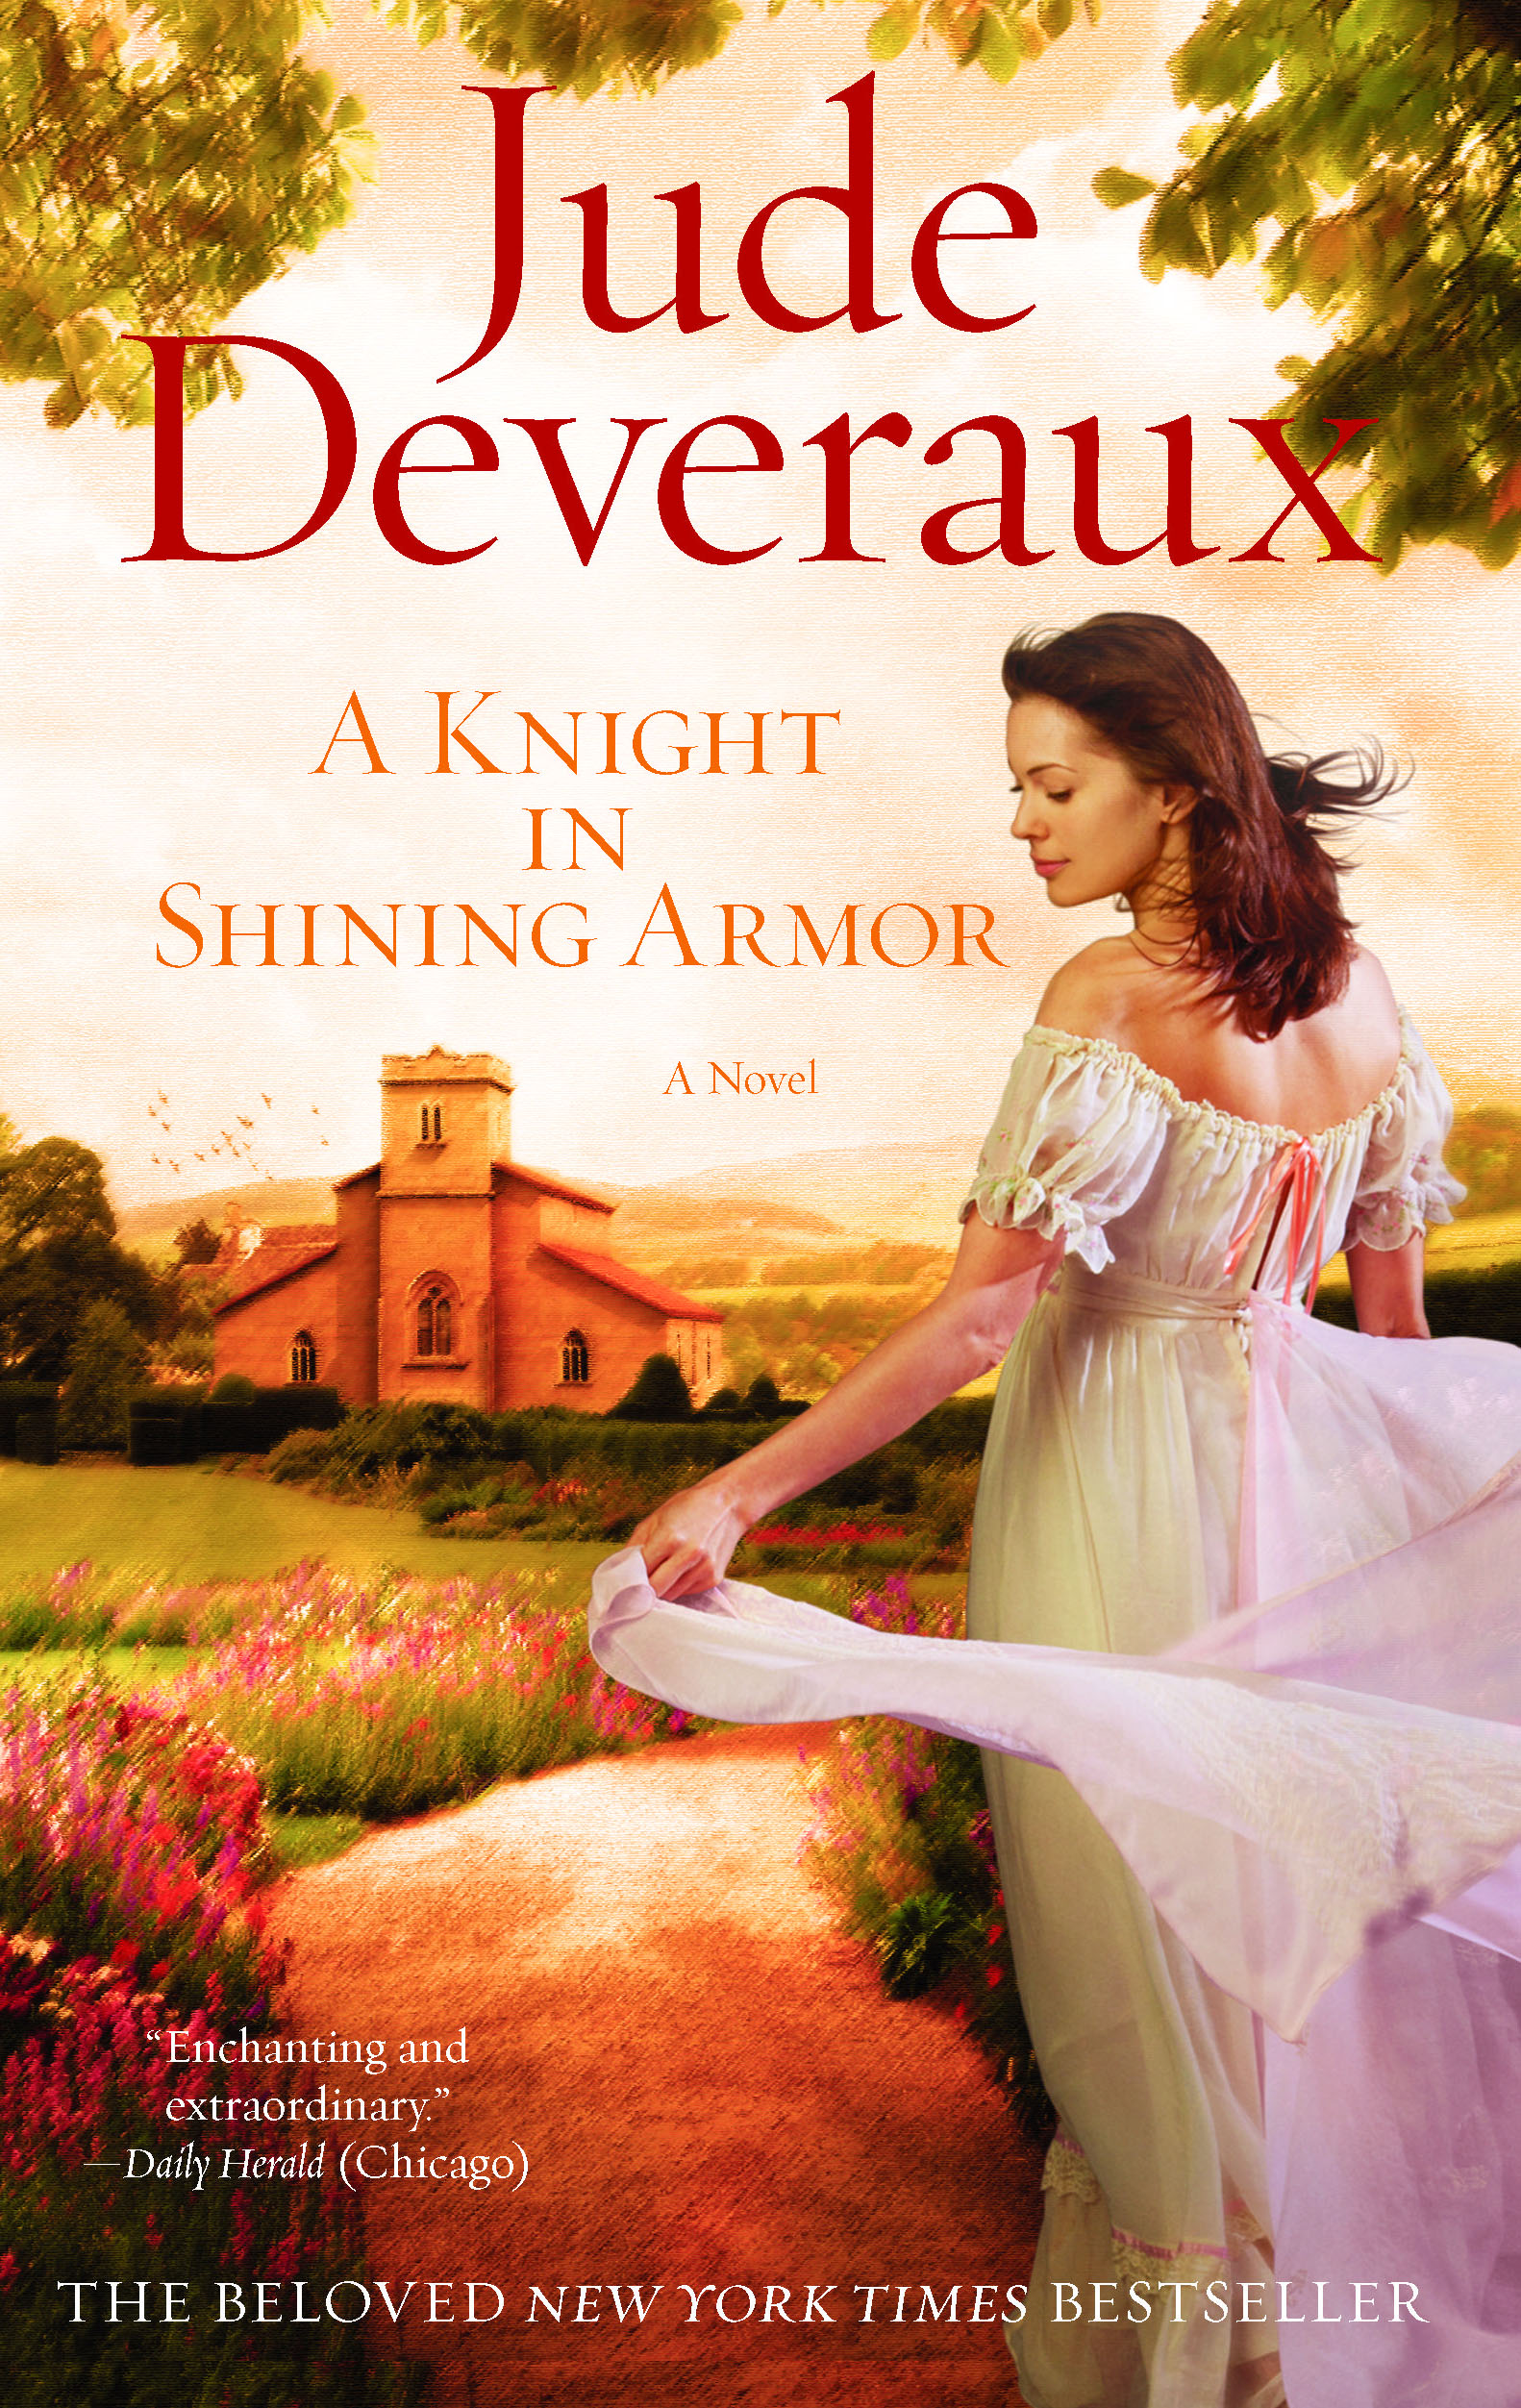 Image result for Knight in Shining Armor by Jude Deveraux